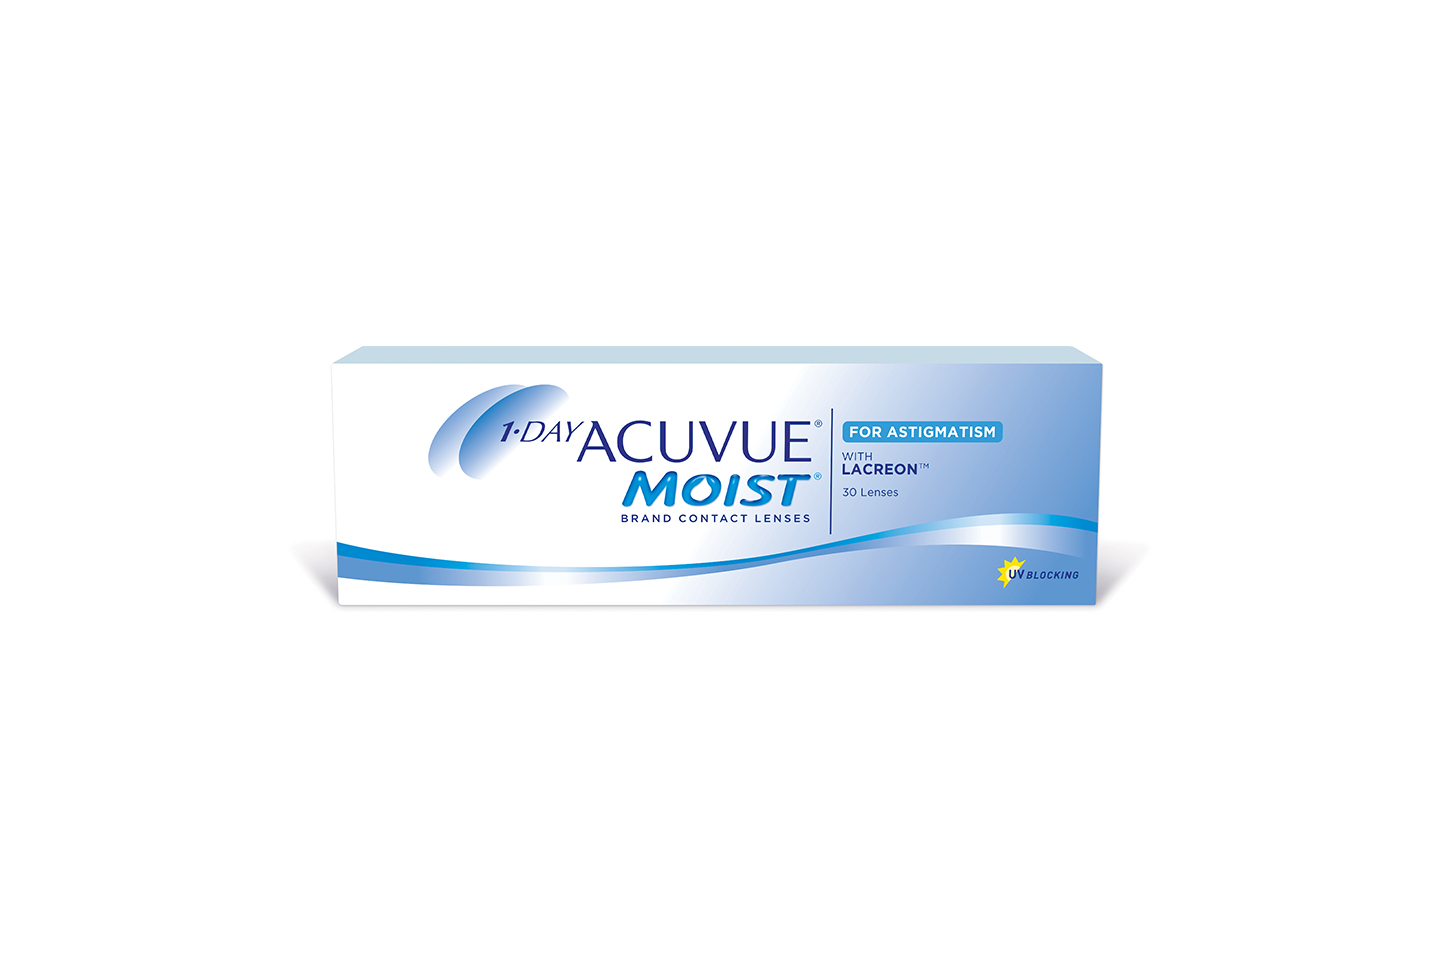 1-DAY ACUVUE MOIST for ASTIGMATISM 30PCS